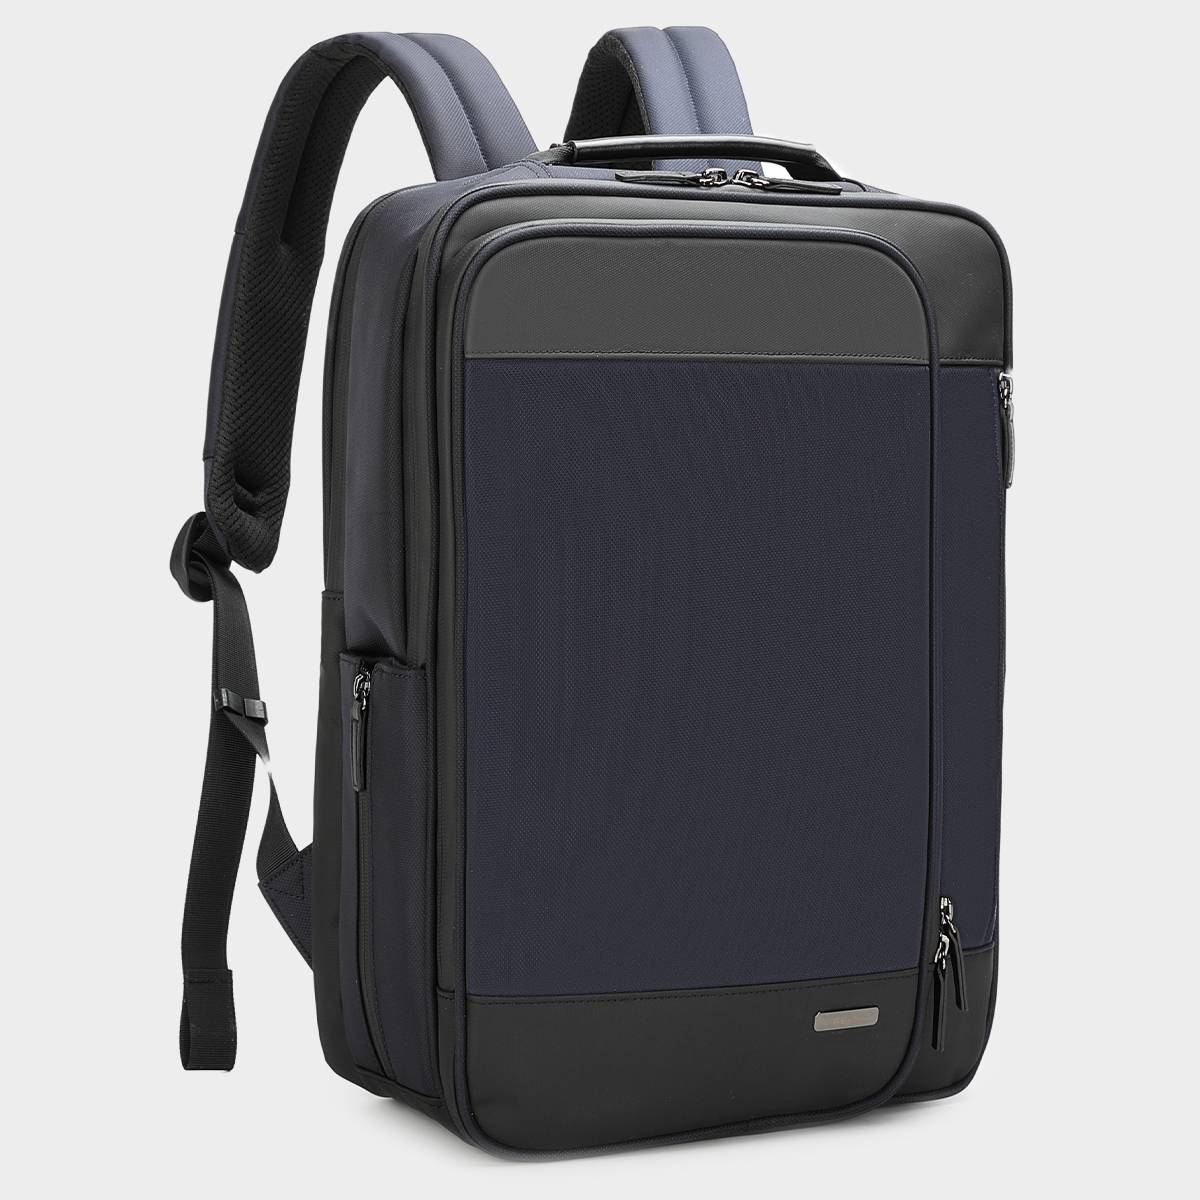 Backpack T-B3985 Featured Image